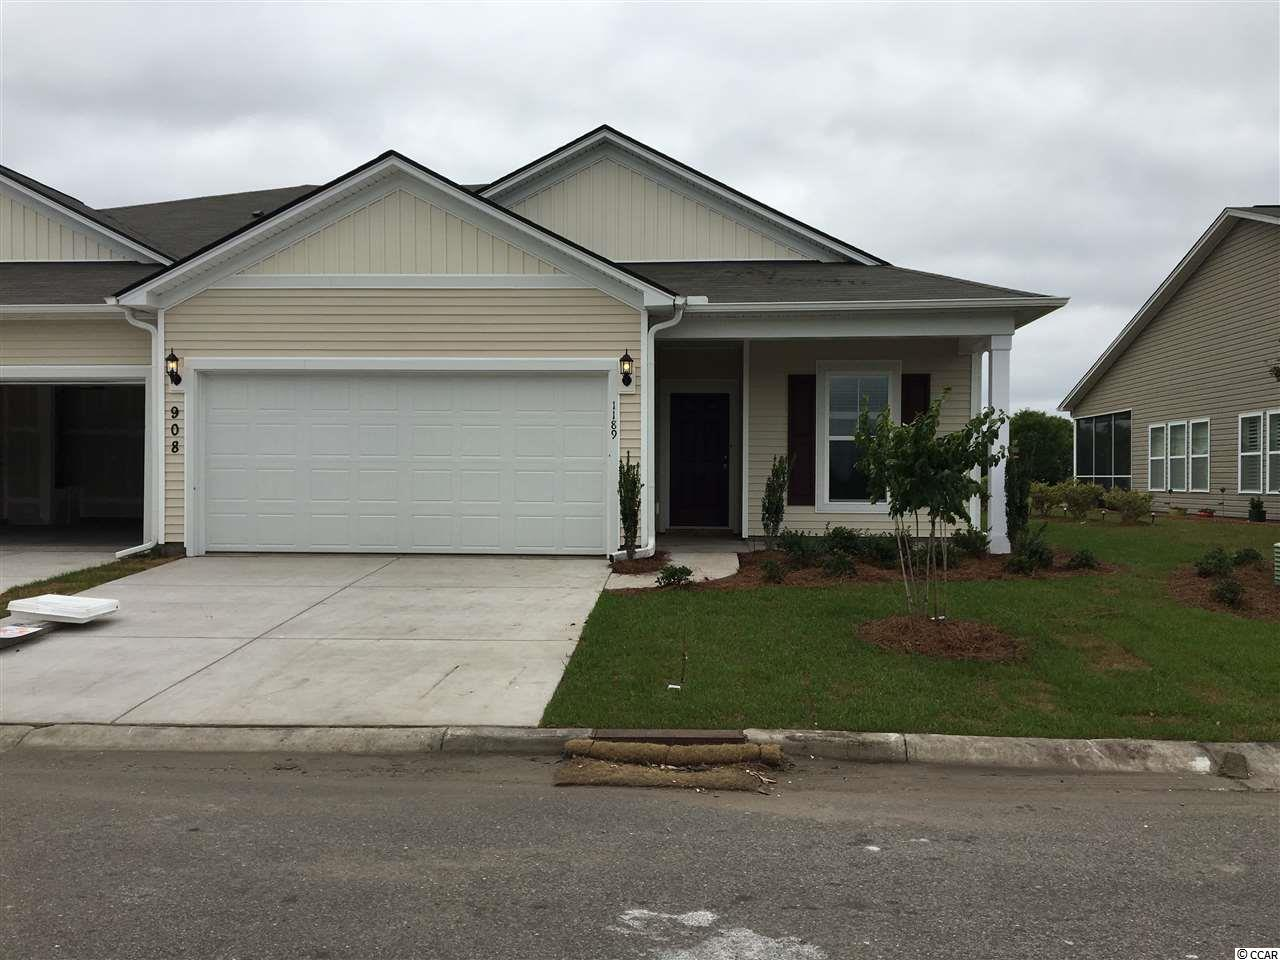 1/2 Duplex MLS:1602180 Carolina Forest - Berkshi  908 Bristish Ln Myrtle Beach SC